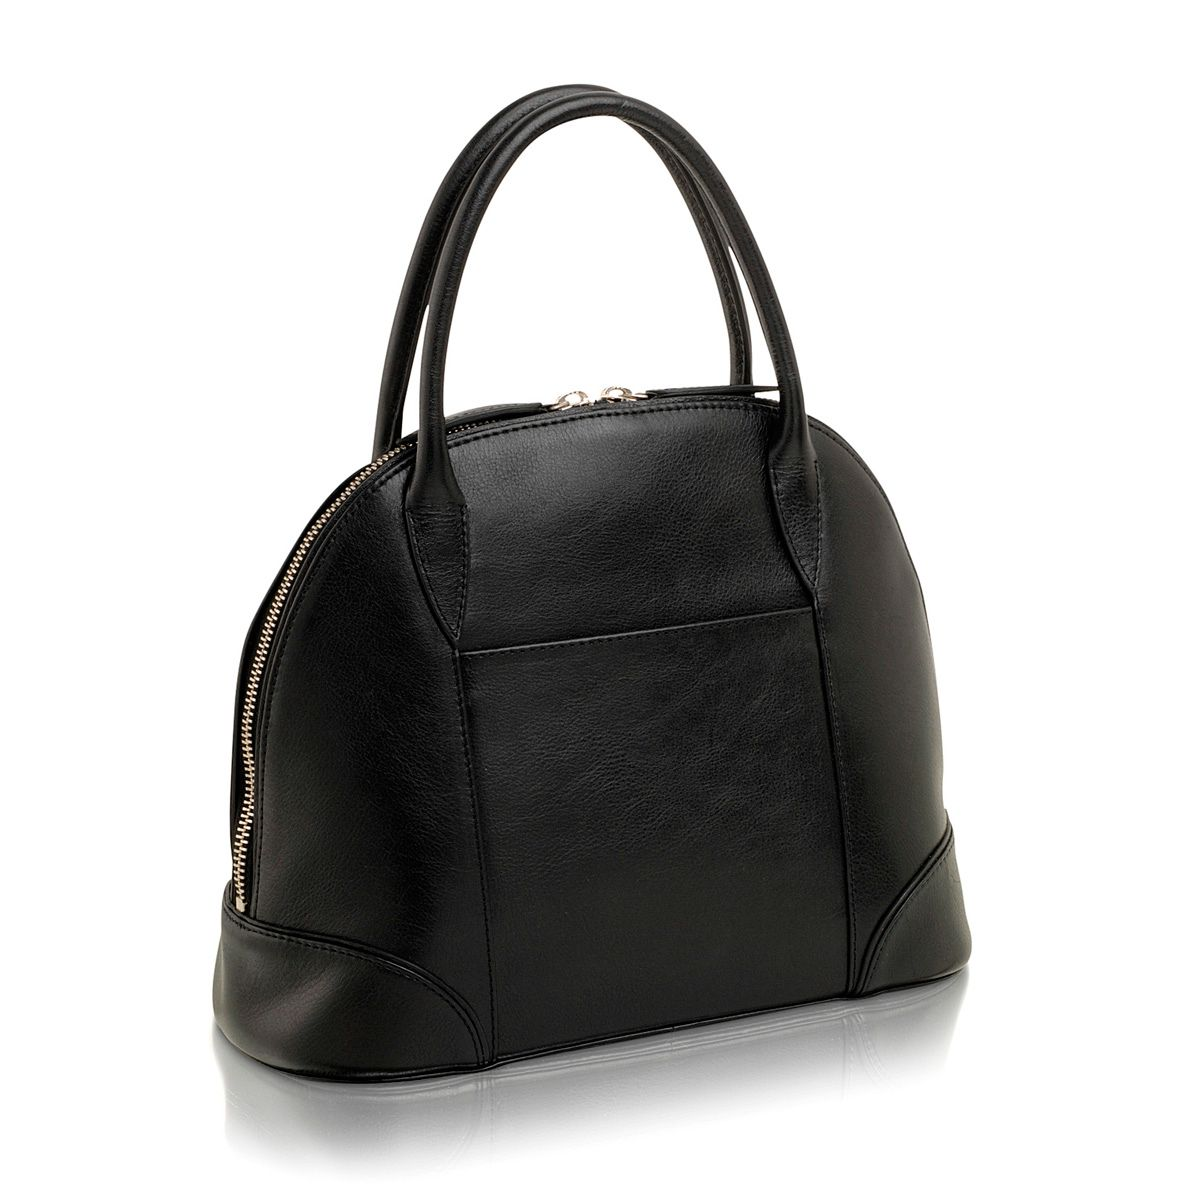 Finch black small tote bag